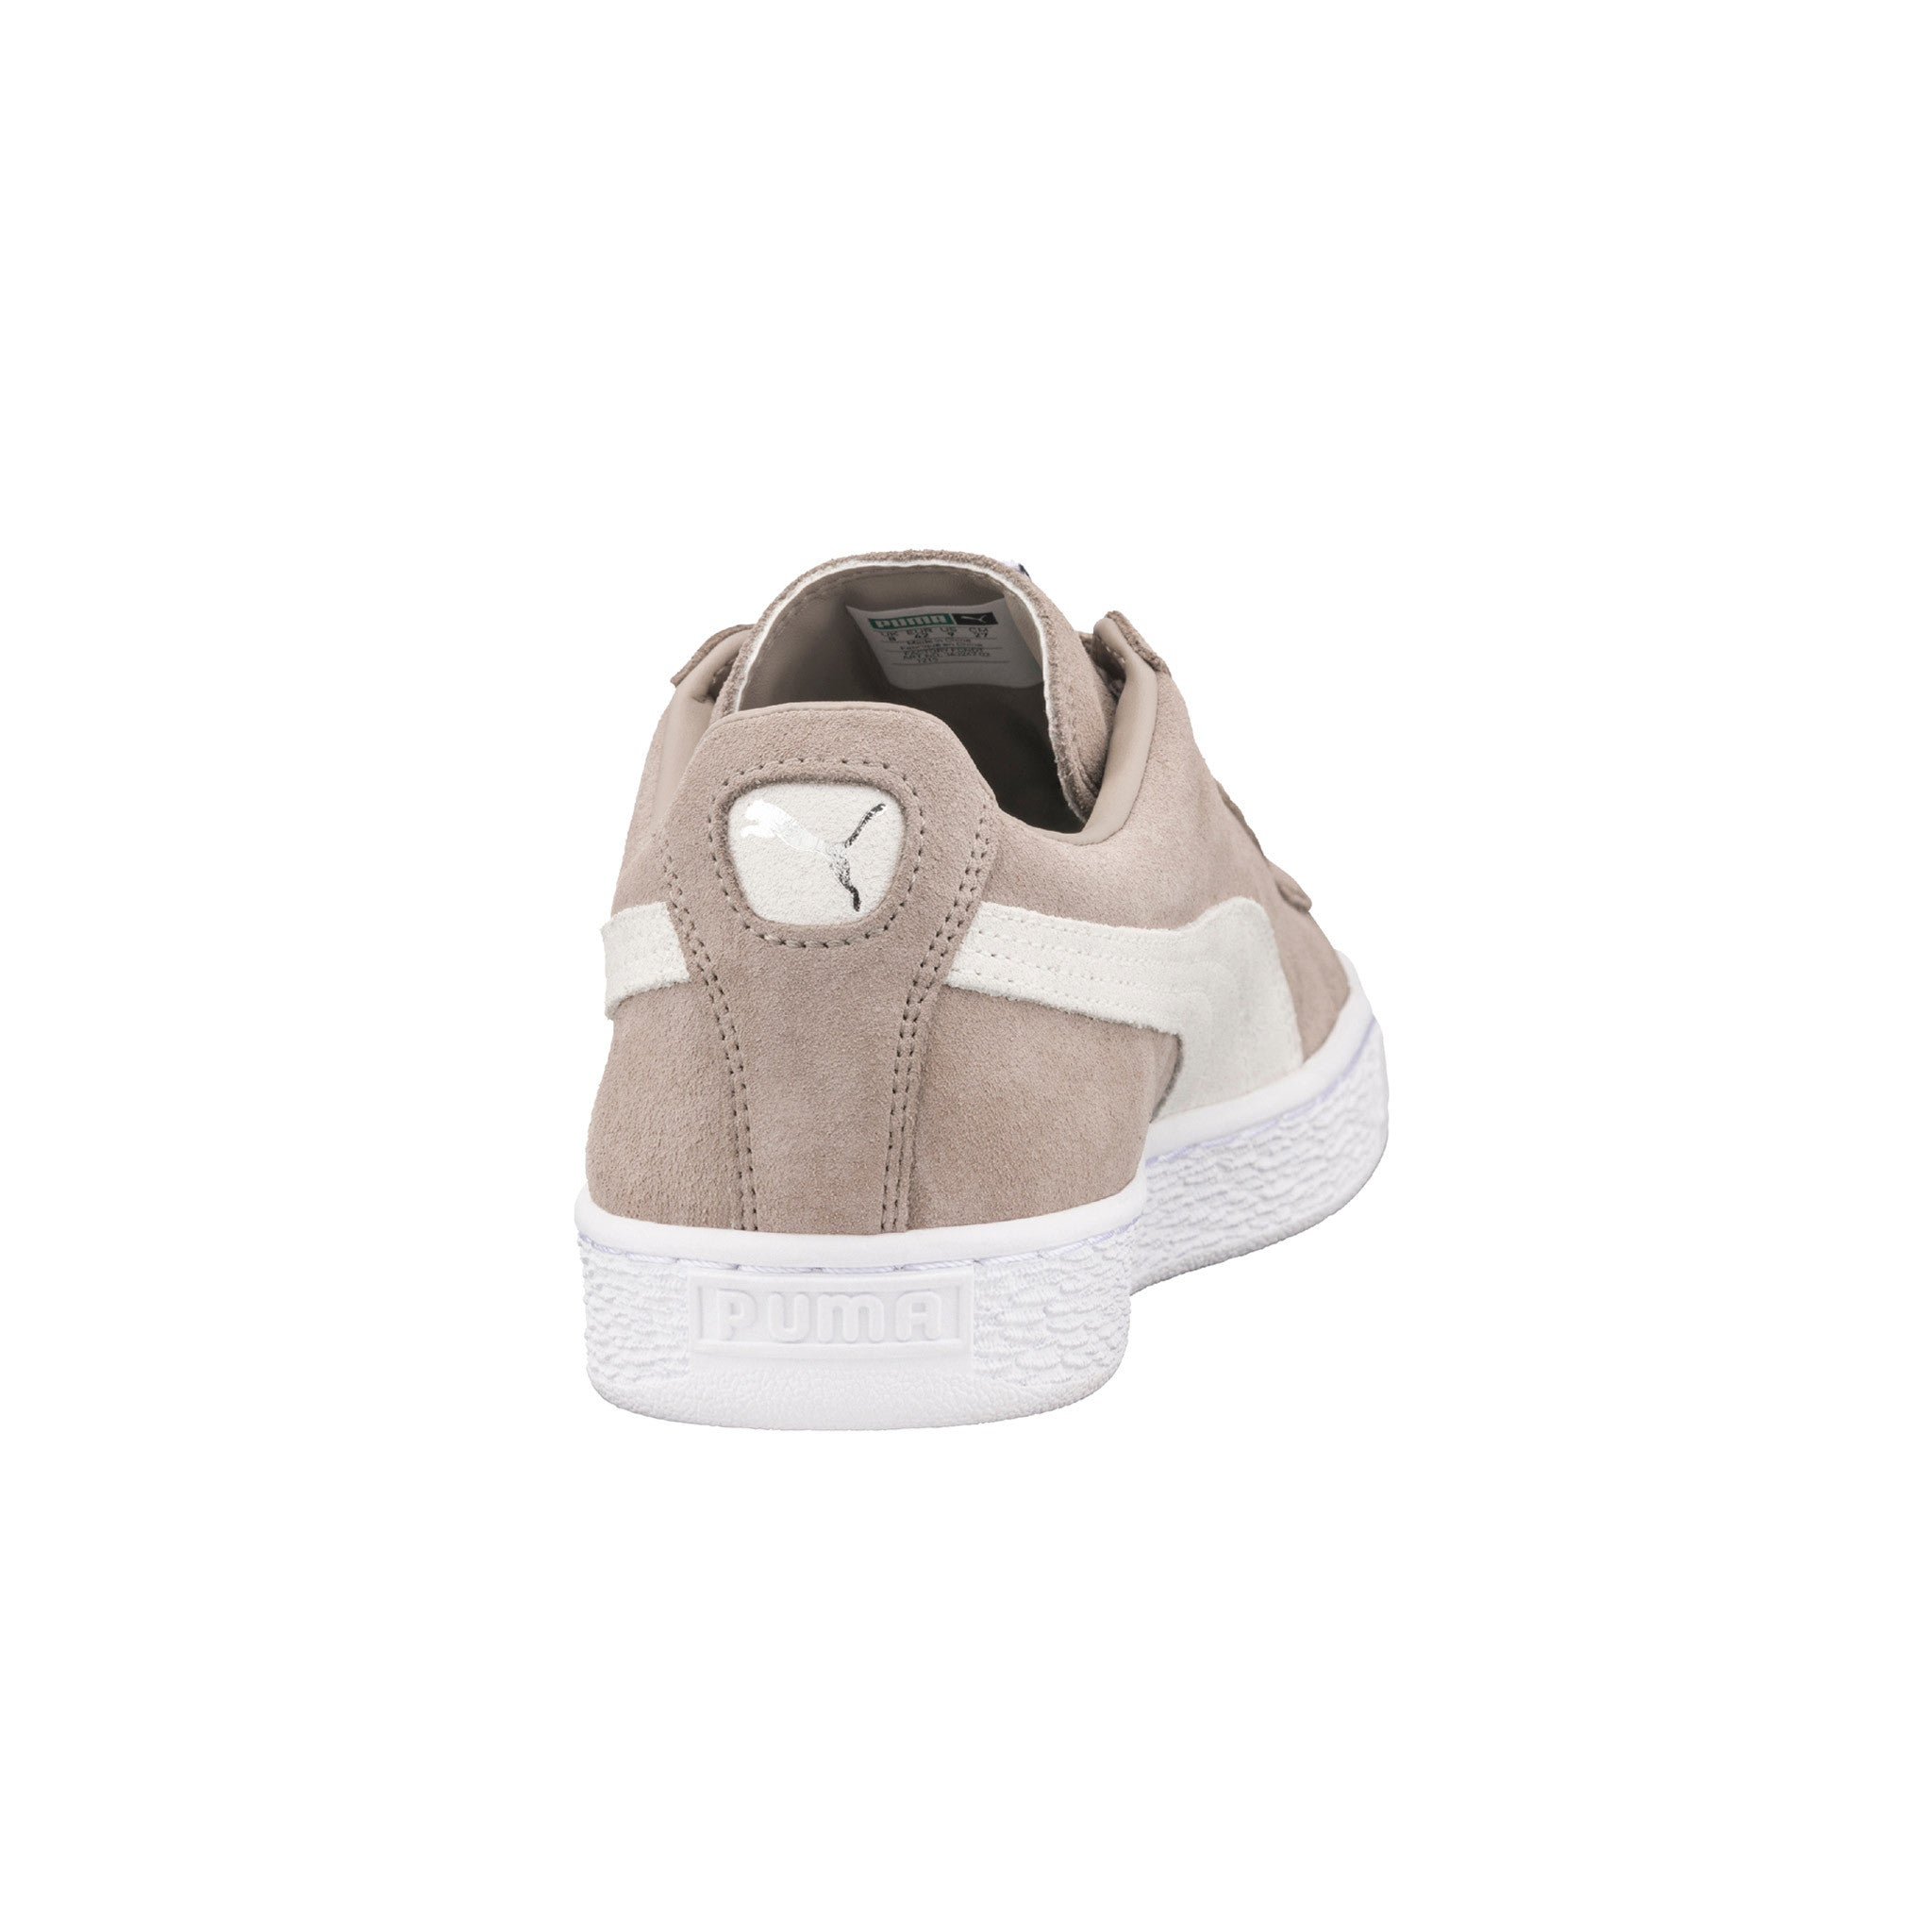 Suede Classic Puma Sneakers Beige Back View